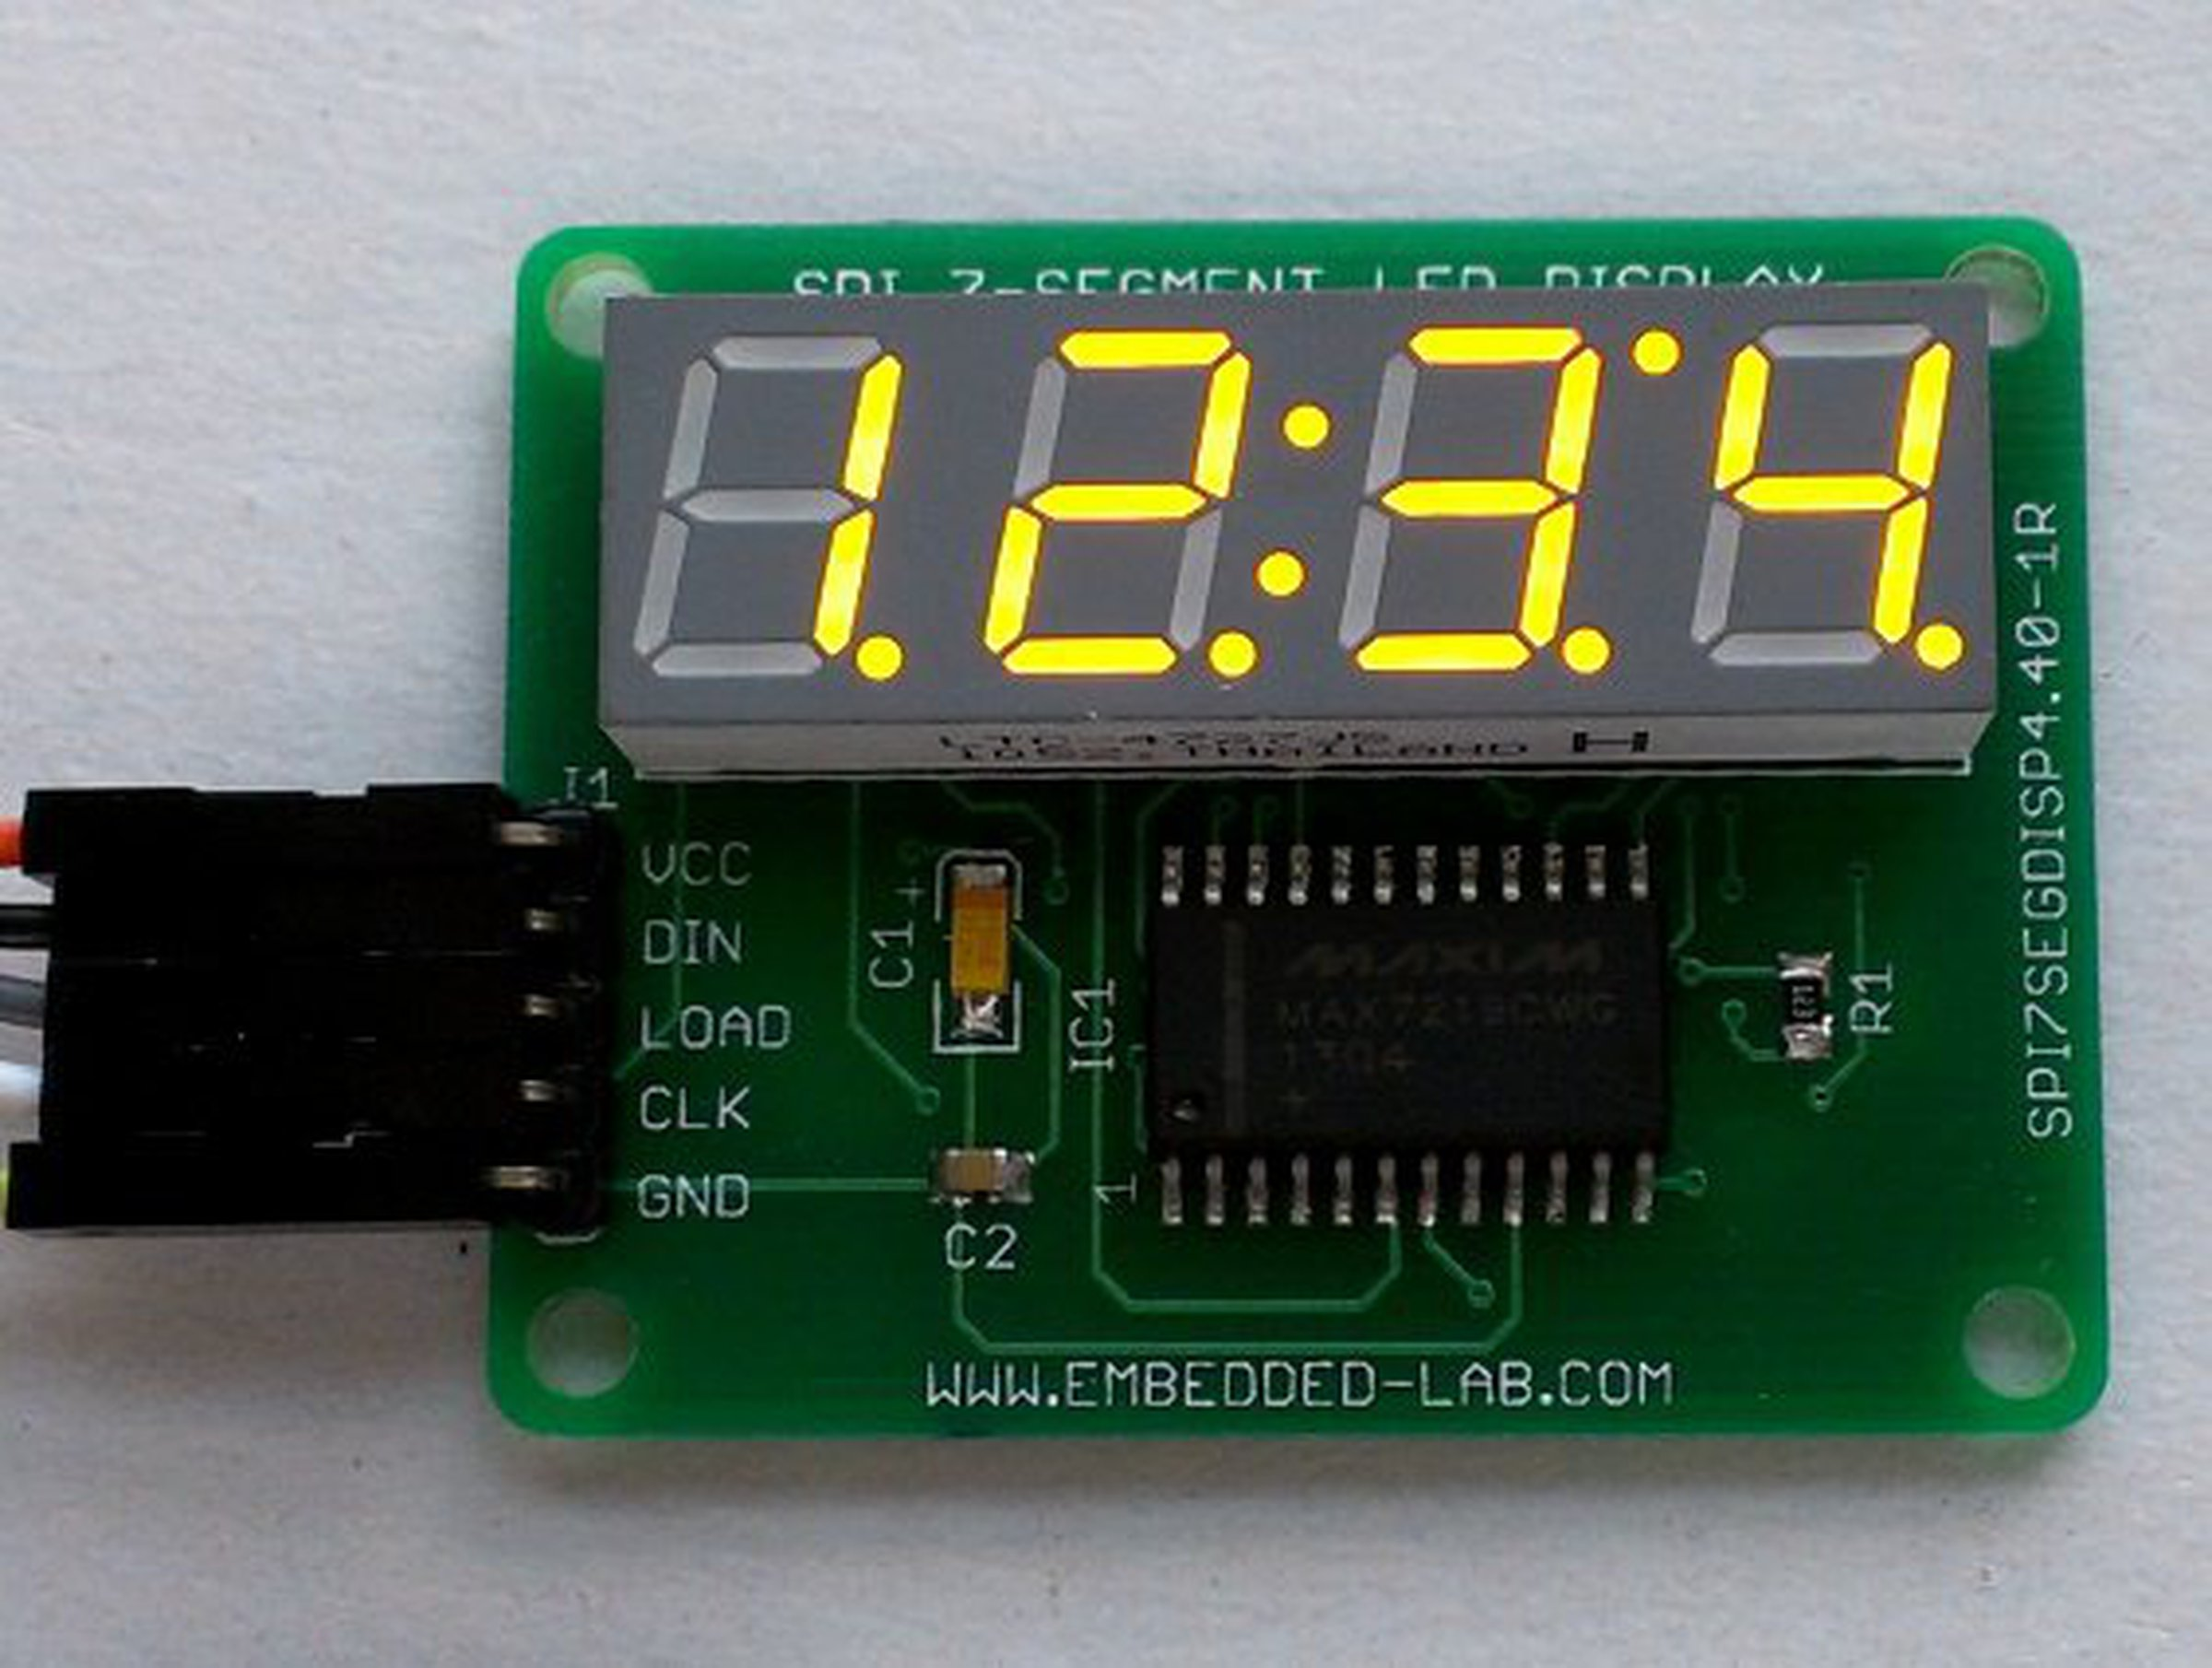 Spi 4 Digit Seven Segment Led Display From Embedded Lab On Tindie Decoder Bcd To 7 1